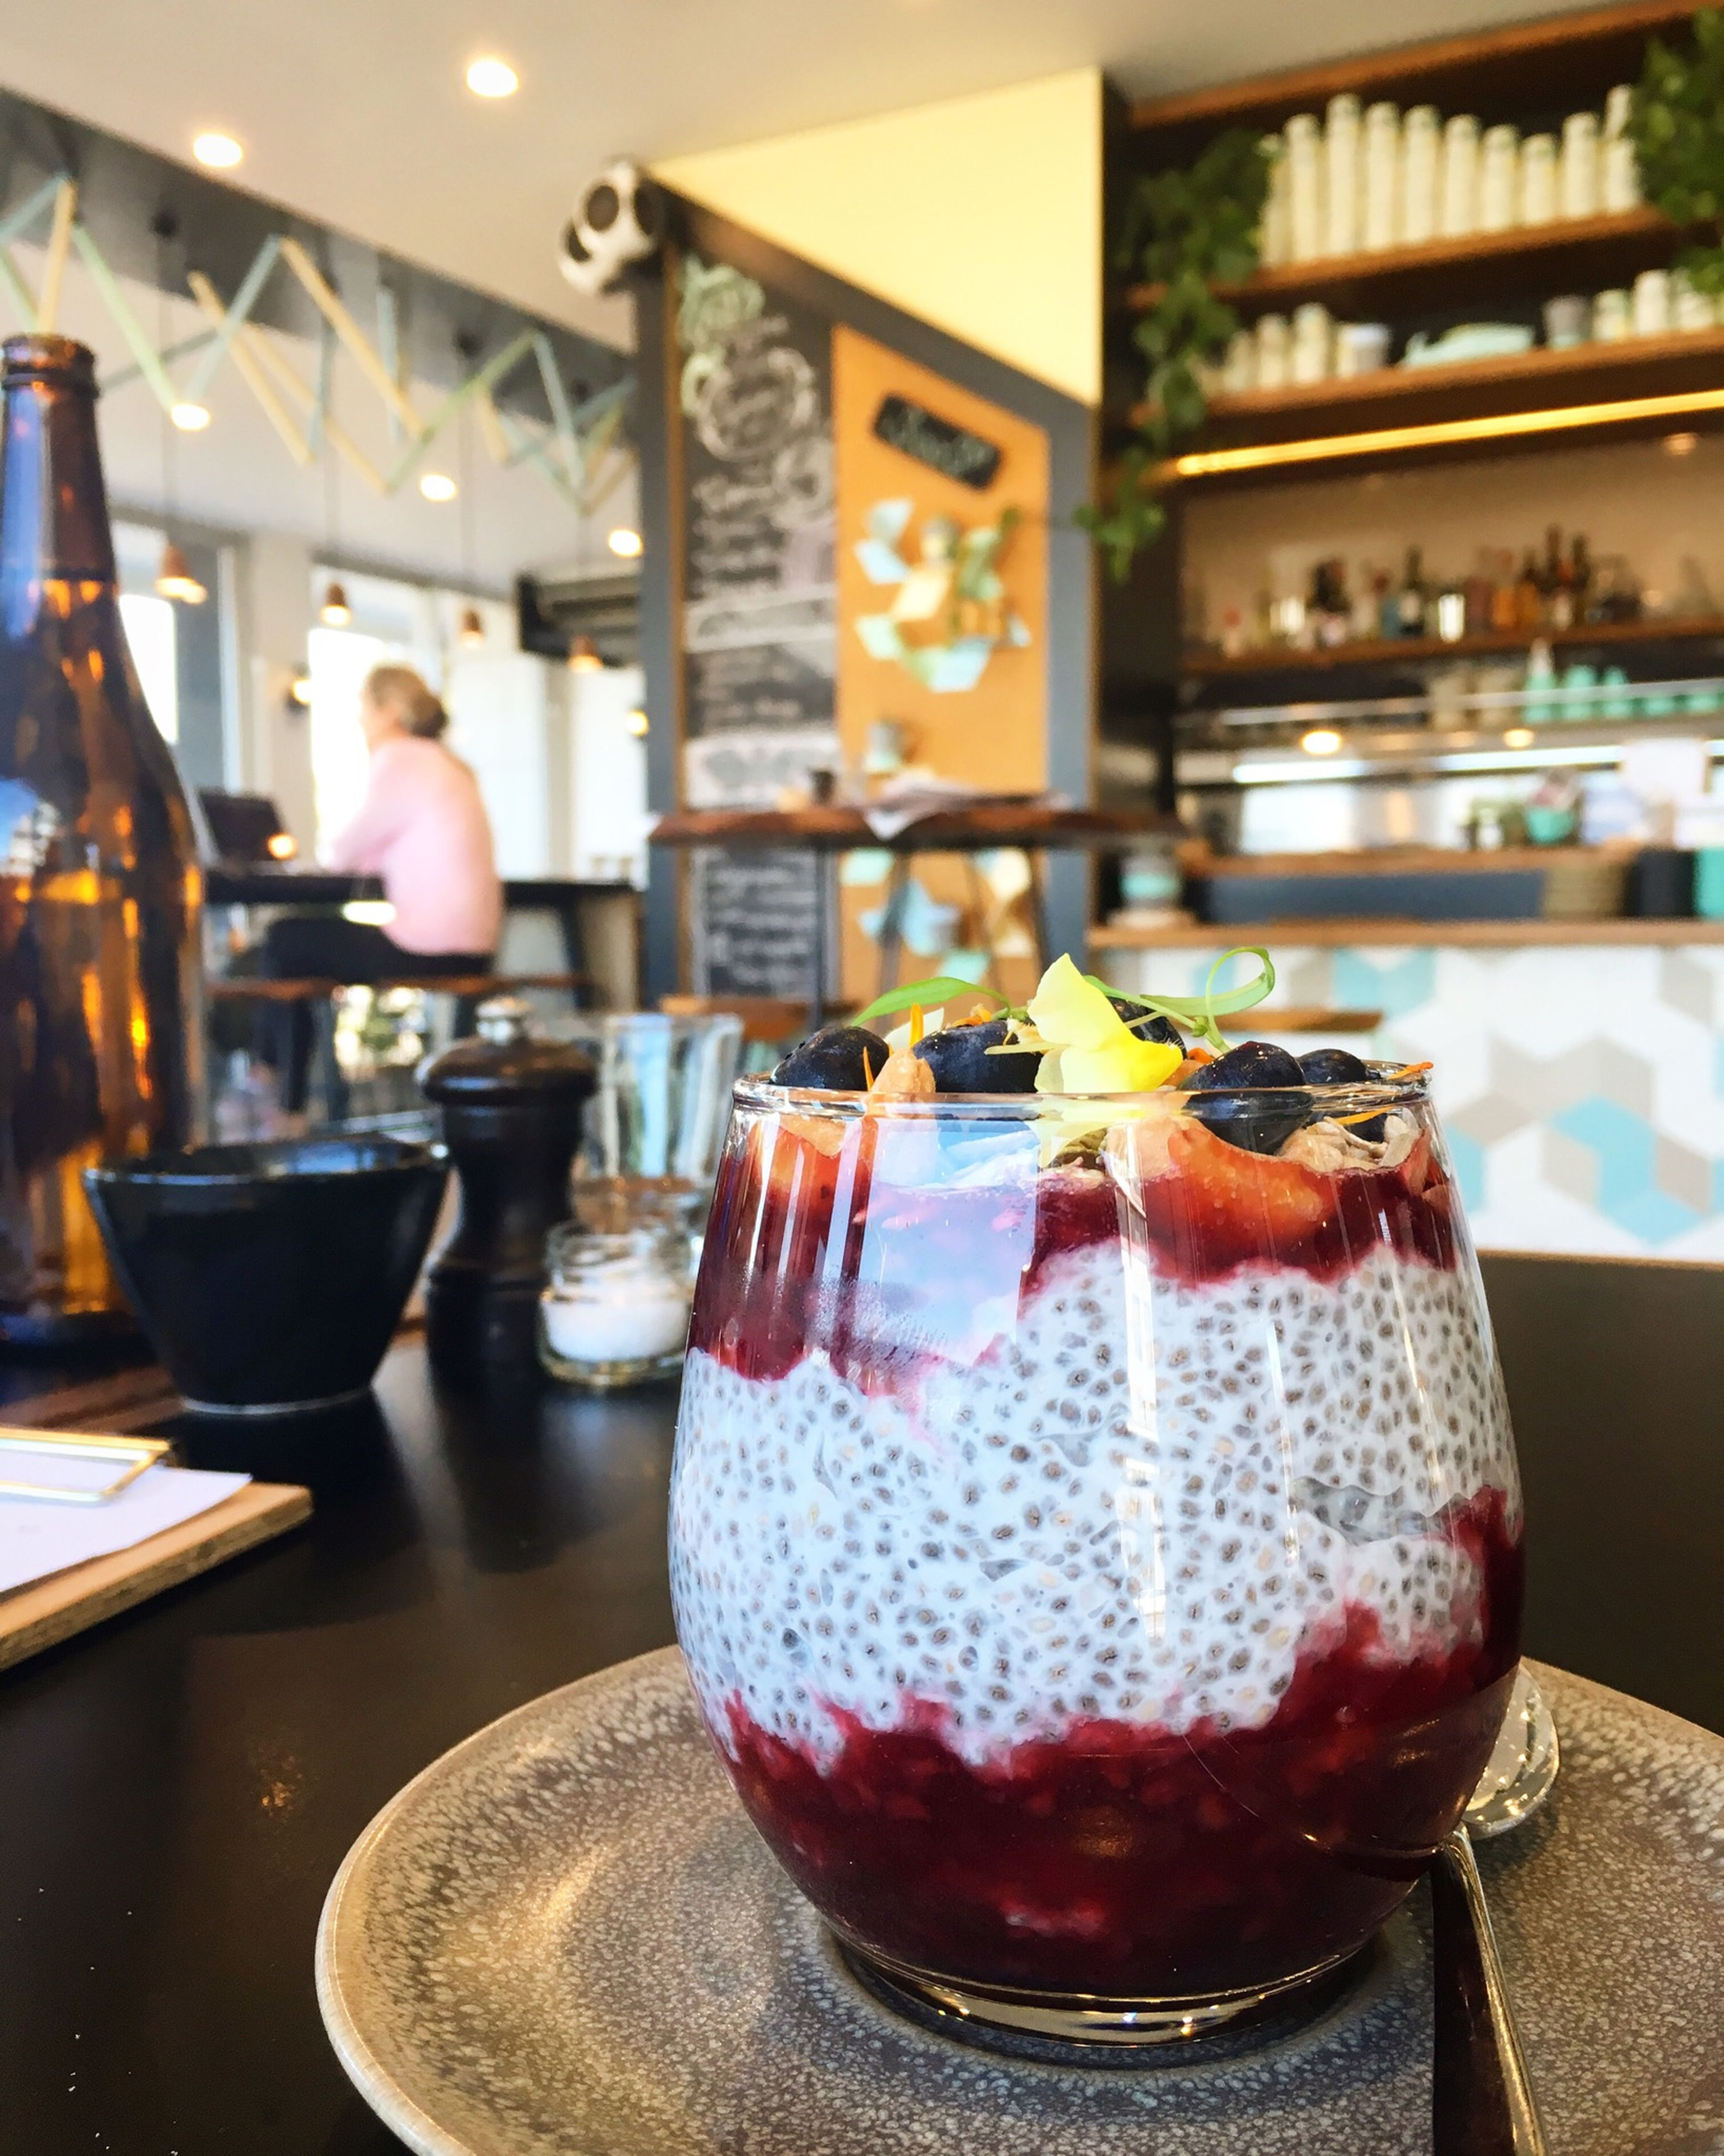 Coconut chai seed pudding Coconut Chaiseed Pudding Mixedberries Rolledoat Lemonblam Cashew Sunflowerseed Cafelafayette Todaysspecial Mondaynoon PortMelbourne Melbourne Australia